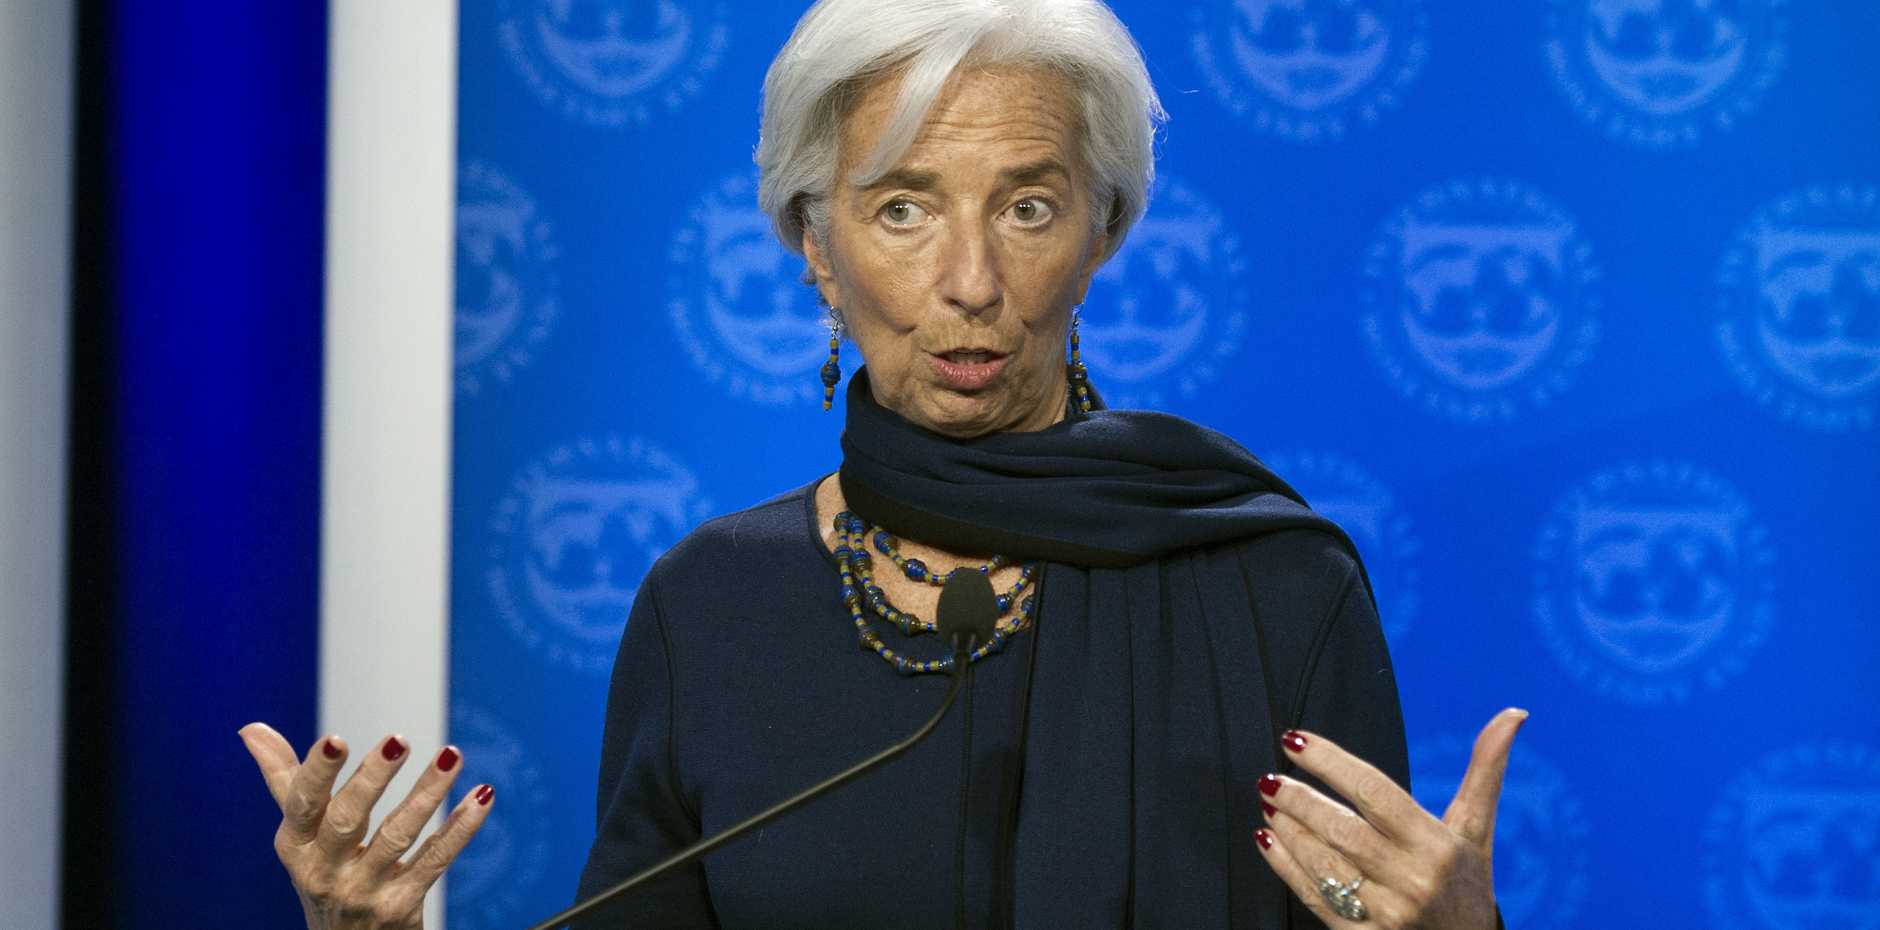 International Monetary Fund (IMF) Managing Director Christine Lagarde makes a statement after the IMF's Executive Board reaffirmed it's full confidence in her Monday, Dec. 19, 2016, in Washington. A special French court has declalred Lagarde guilty of criminal negligence in a long-running arbitration case. (AP Photo/Cliff Owen)